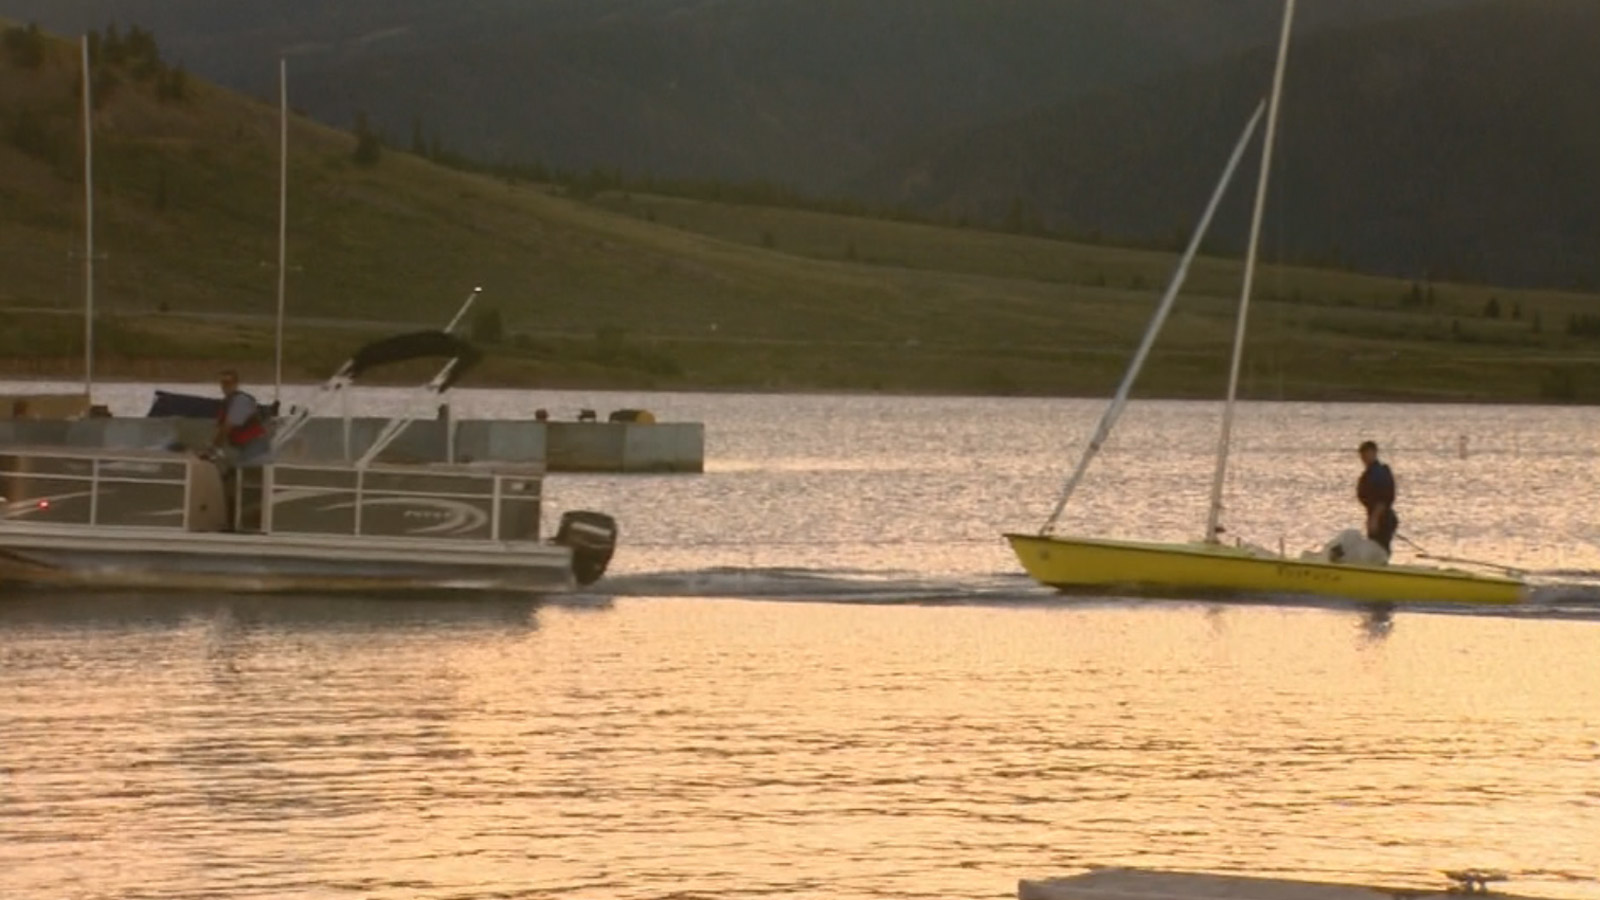 A boat tows another boat after it capsized on Lake Dillon Thursday evening (credit: CBS)